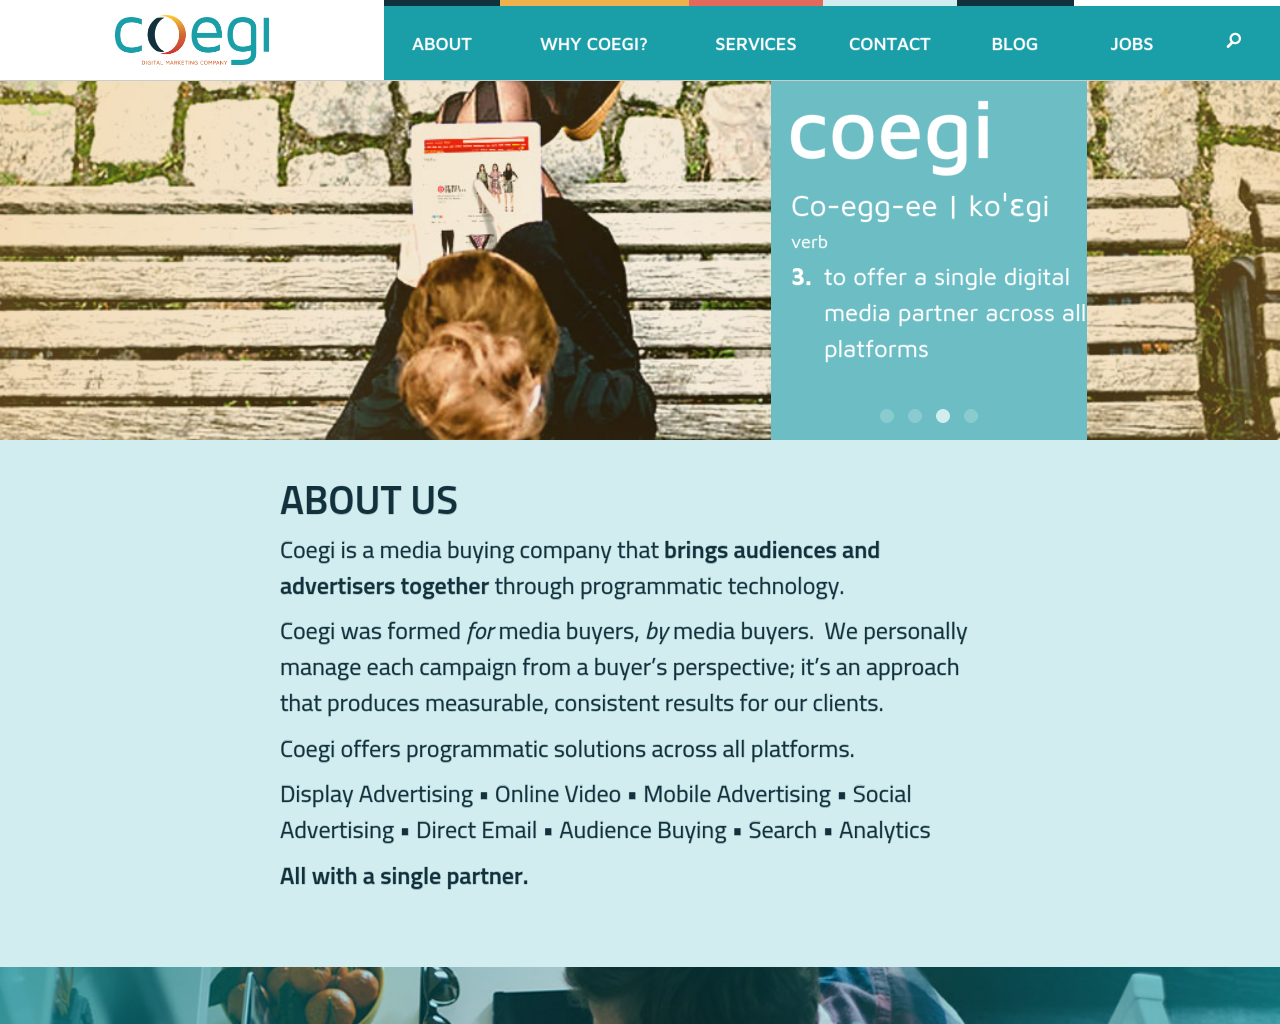 Coegi-Advertising-Reviews-Pricing